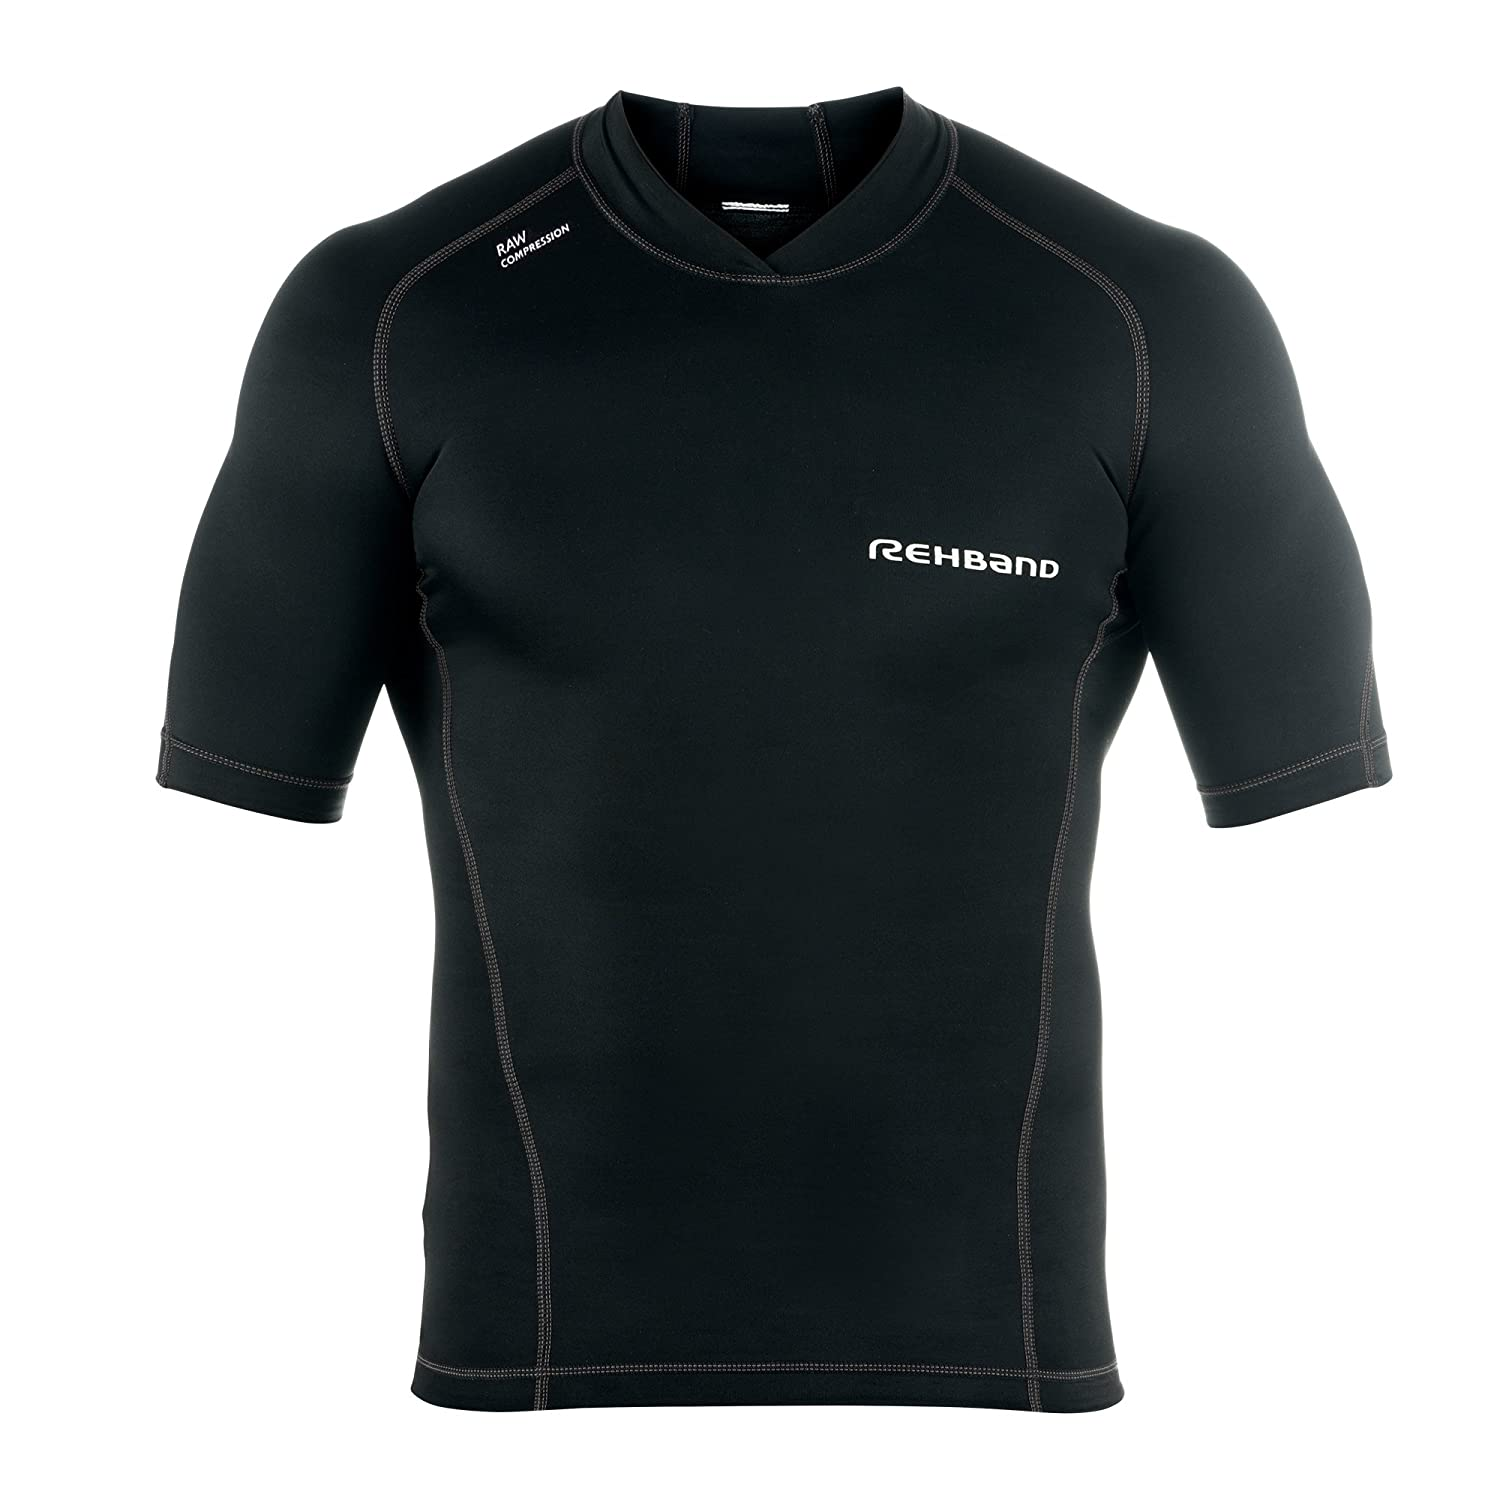 Rehband Herren Kompression RX Raw Compression, schwarz, 6190-06